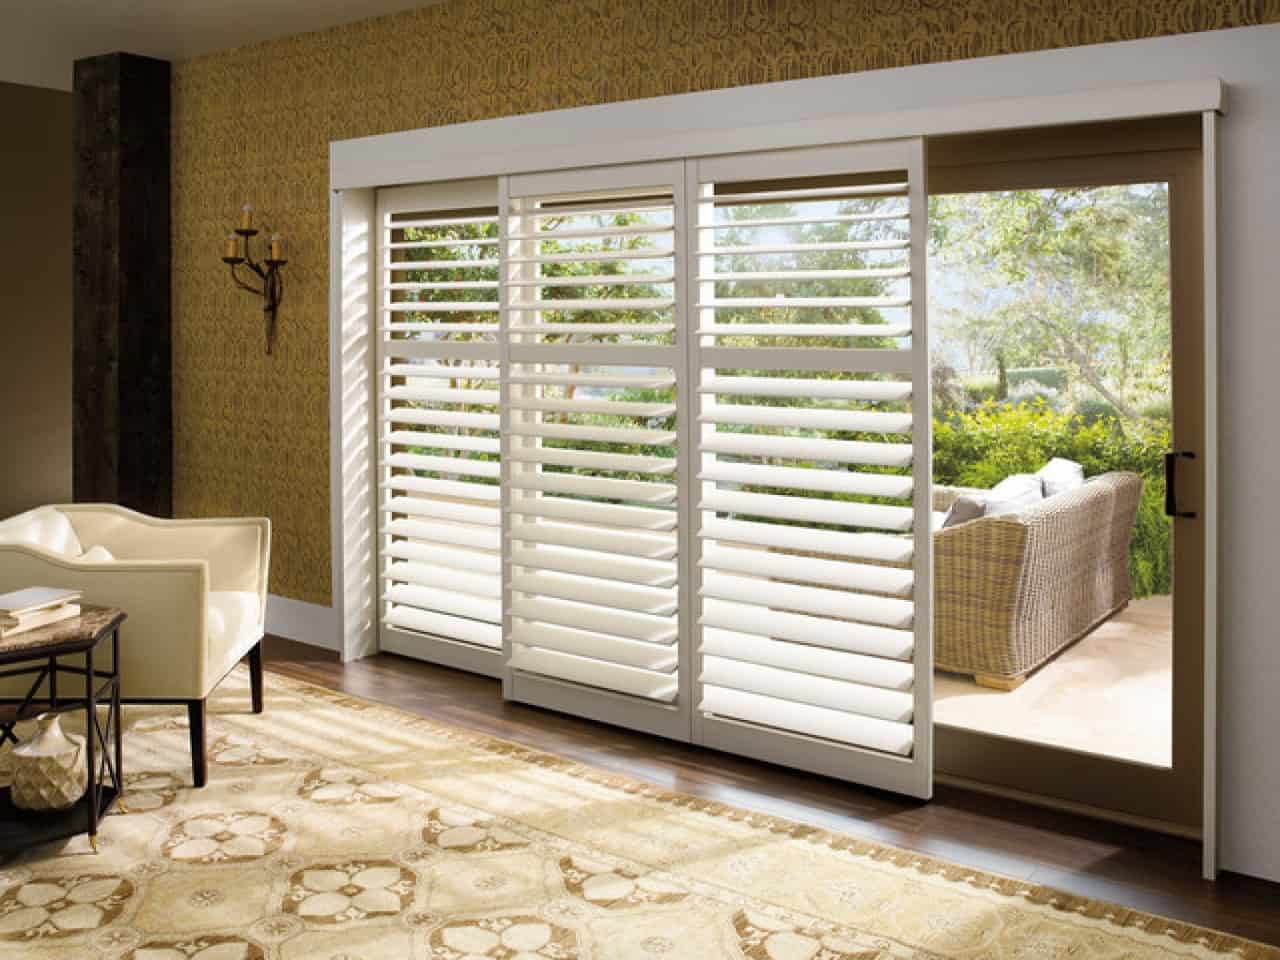 window treatments for sliding glass doors (ideas & tips)